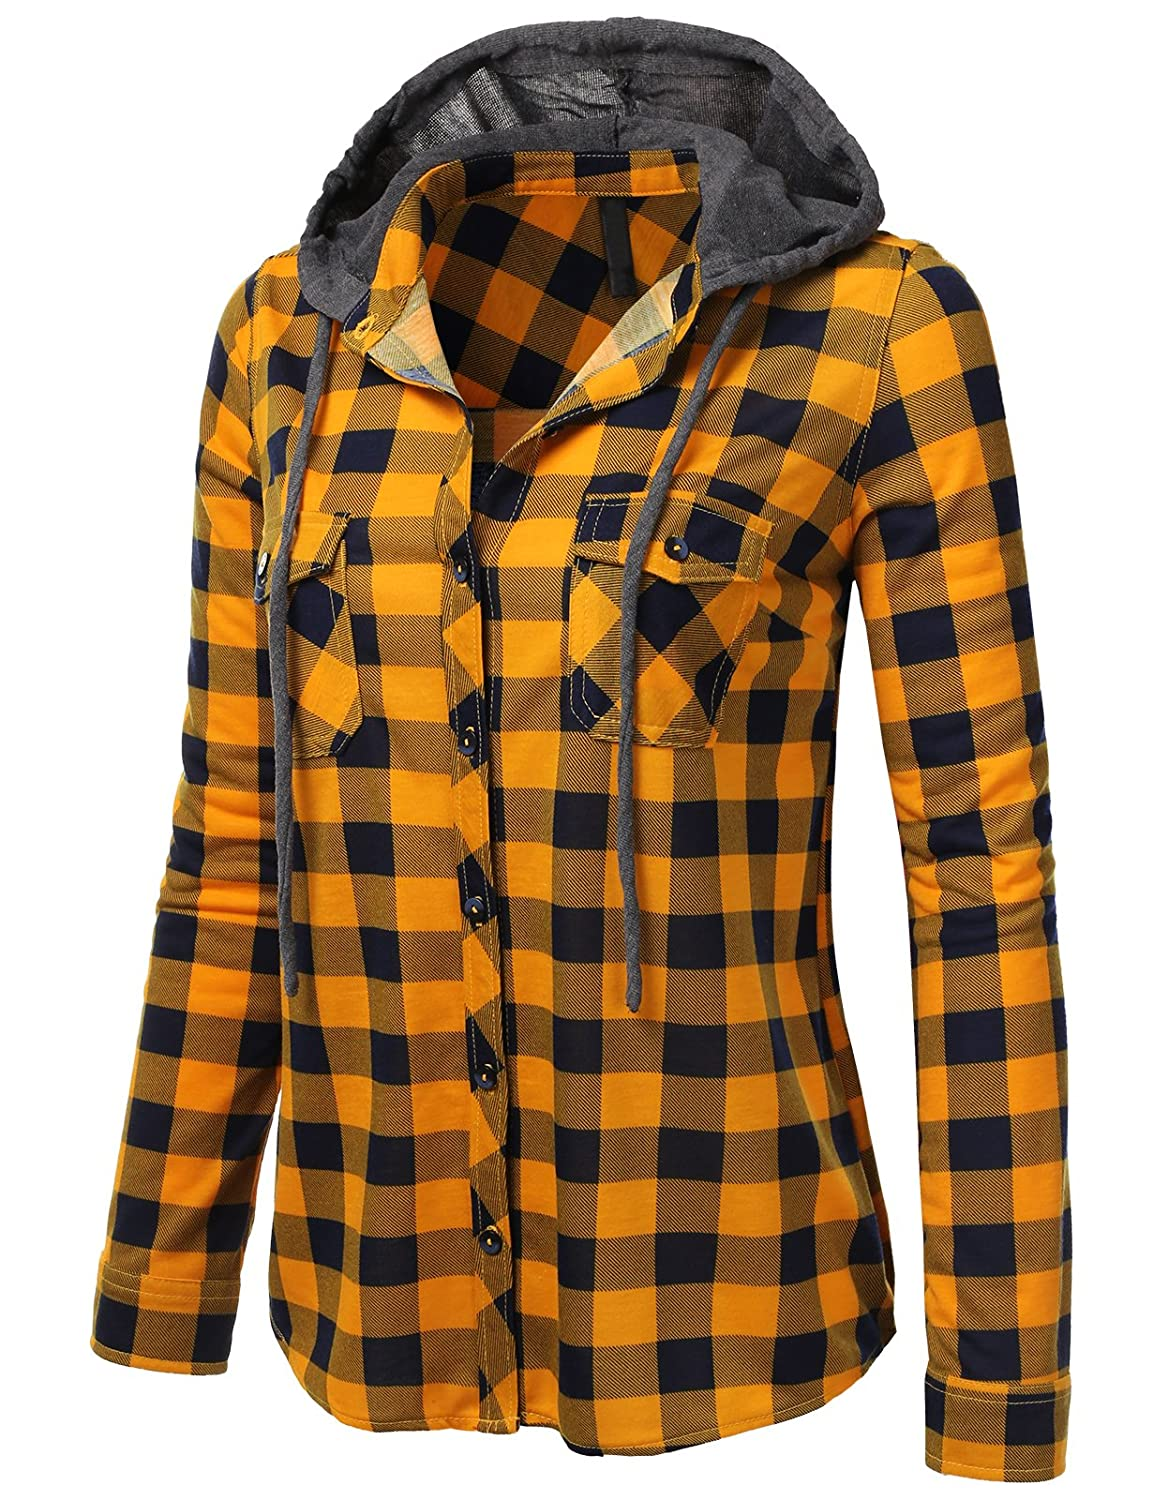 944f8600e069a8 Style no : #AWTSTL0473-1495: Collared Button Down Plaid Flannel Shirt / #  AWTSTL0473 : Plaid Flannel Shirts w/ Solid Hoodie Pair with a crop top and  shorts ...